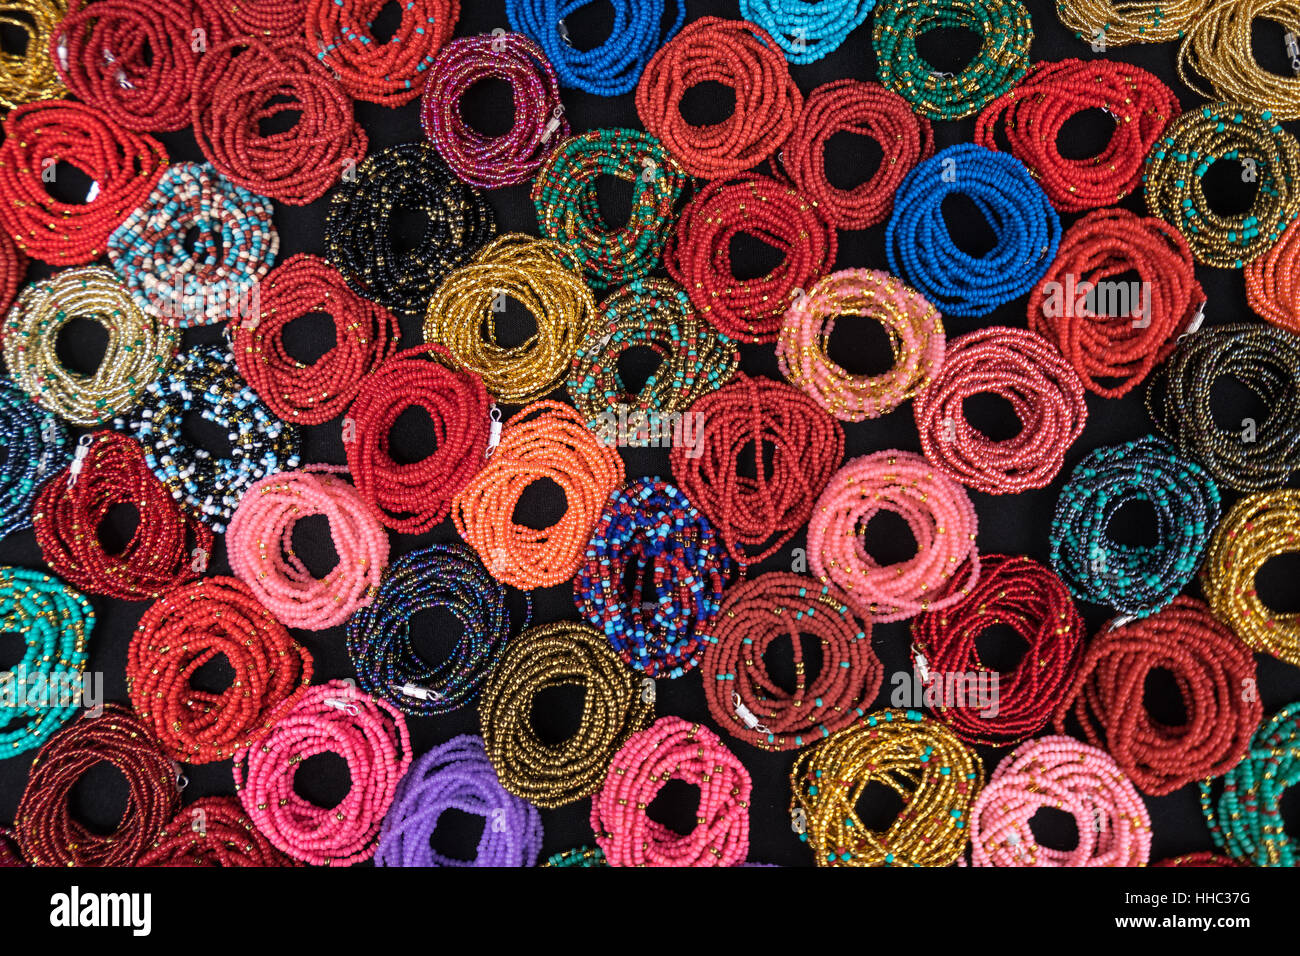 pattern created by colorful bracelets in Otavalo Ecuador - Stock Image